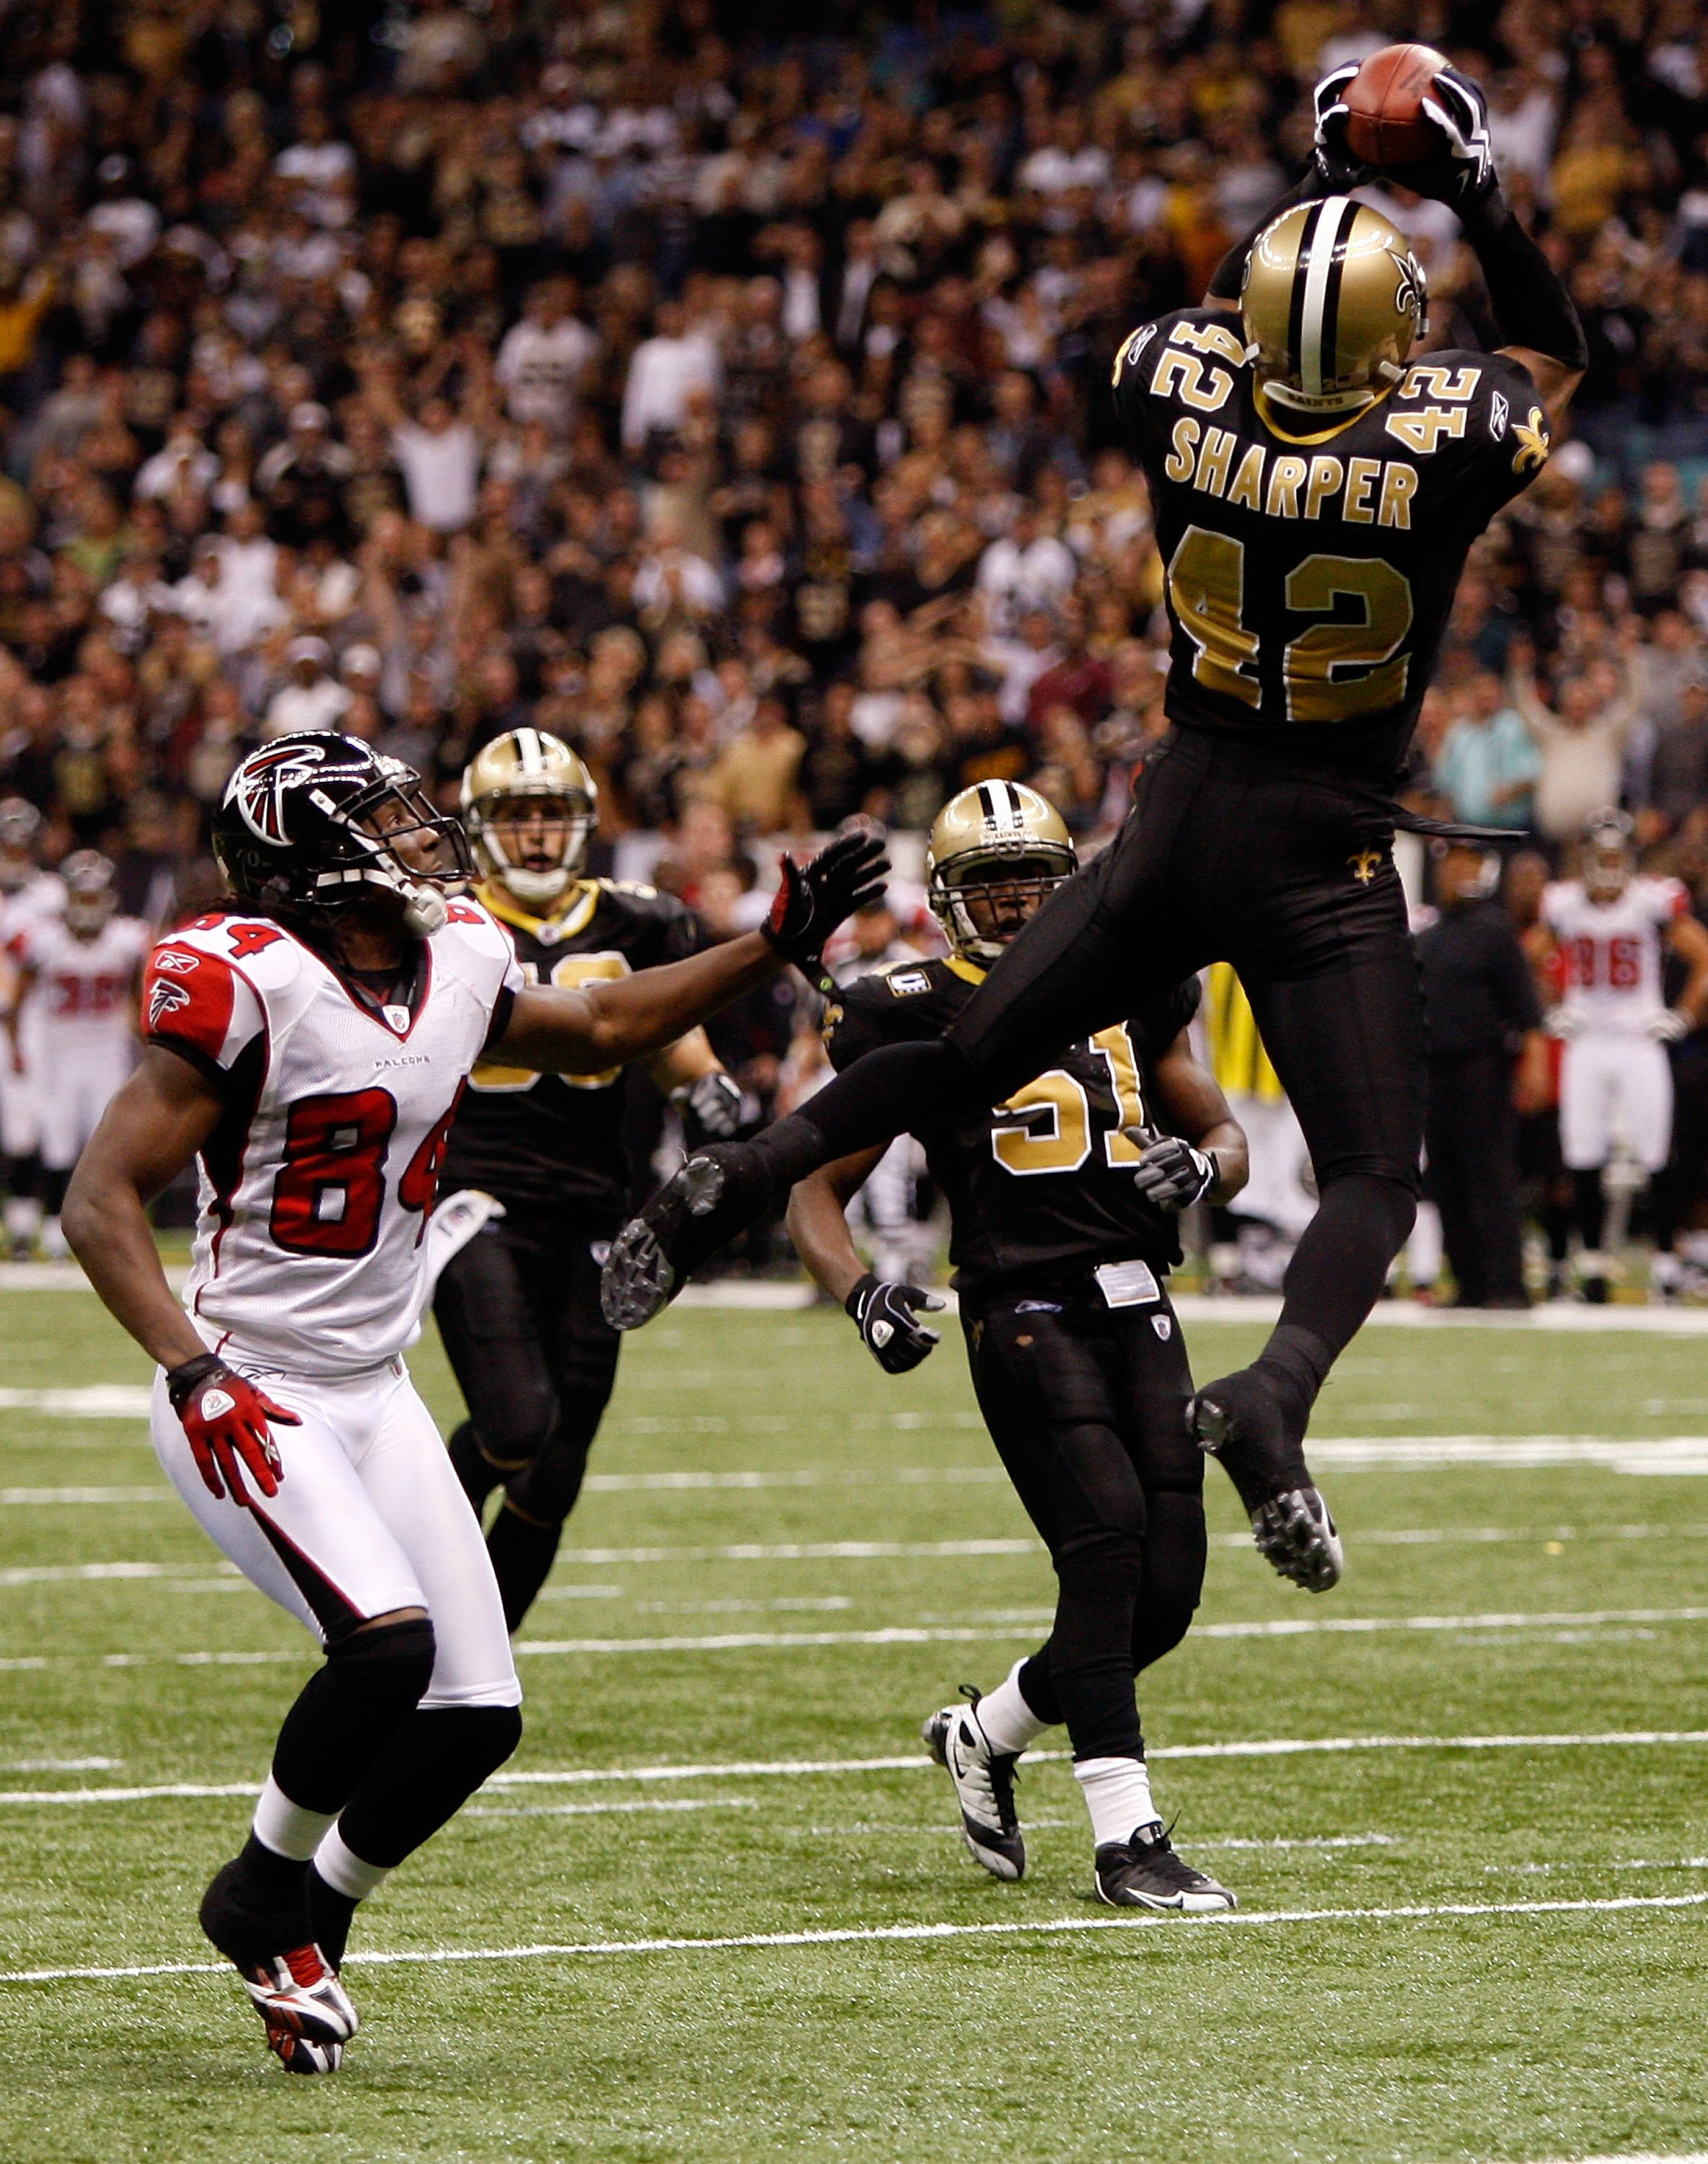 NEW ORLEANS - NOVEMBER 02:  Darren Sharper #42 of the New Orleans Saints catches an interception against the Atlanta Falcons at Louisana Superdome on November 2, 2009 in New Orleans, Louisiana.  (Photo by Chris Graythen/Getty Images)